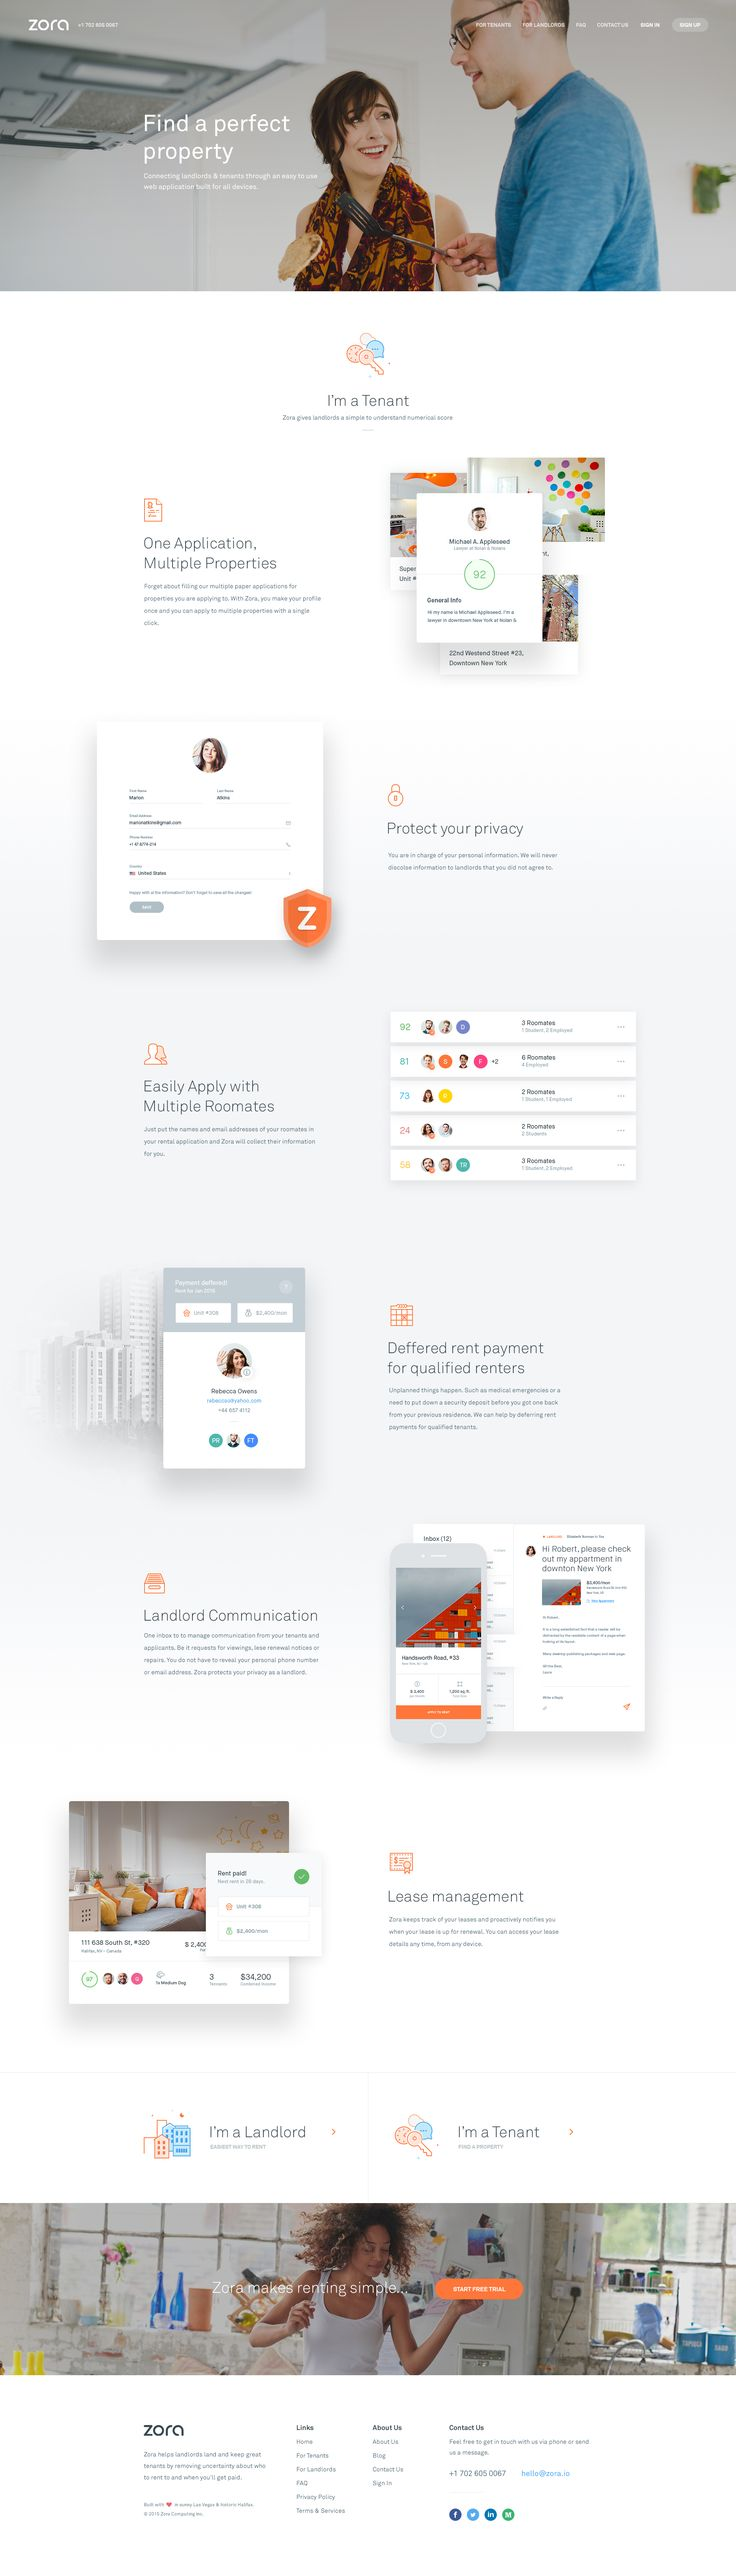 Dribbble - features---tenants.jpg by Balkan Brothers